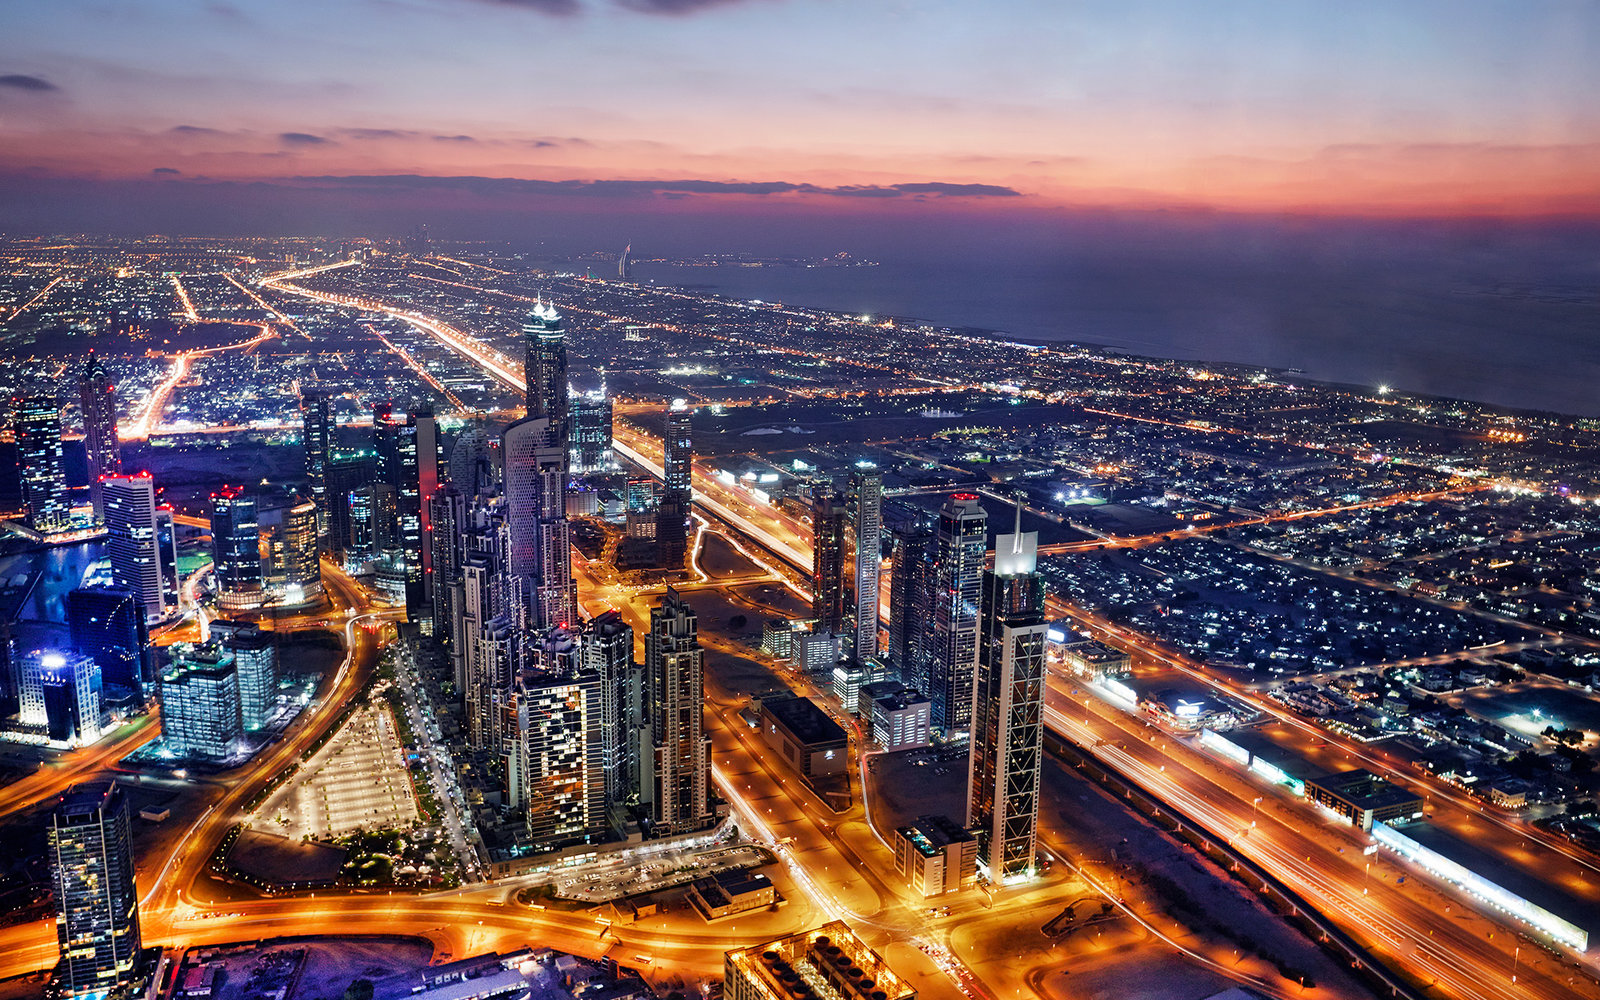 20 Photos That Prove Dubai is the Most Beautiful City to Admire From Above